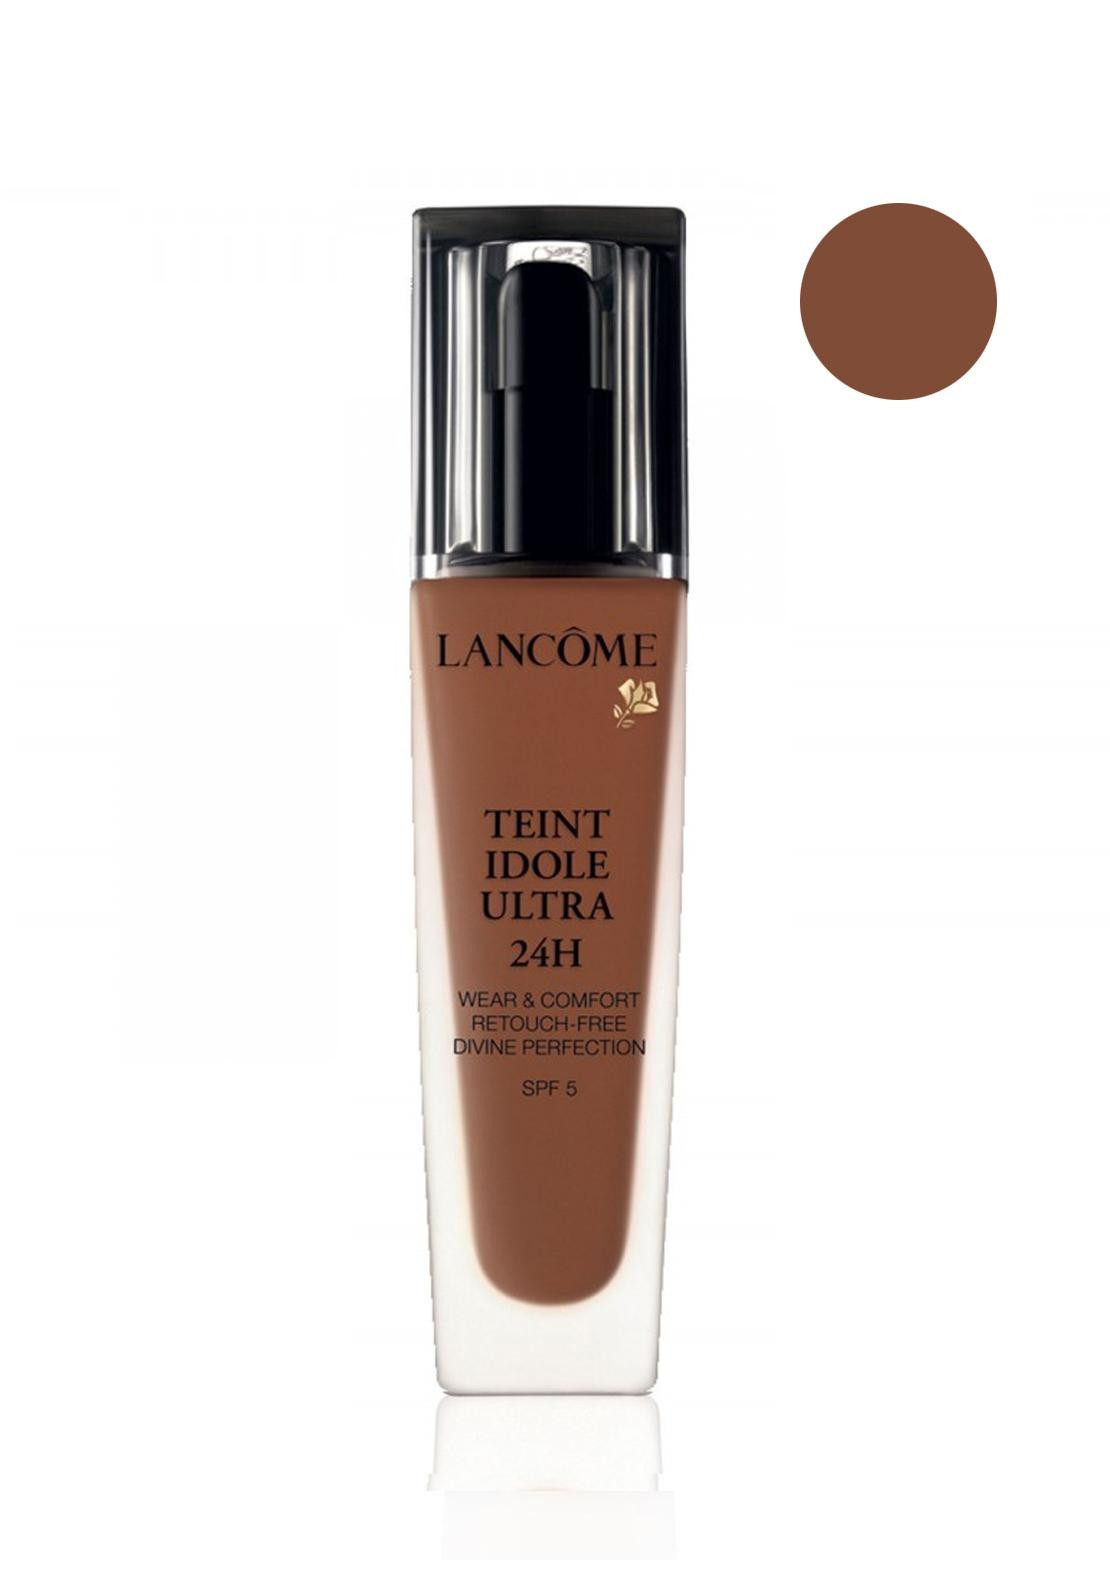 Lancome Teint Idole Ultra Foundation, Lancome Brownie 30ml